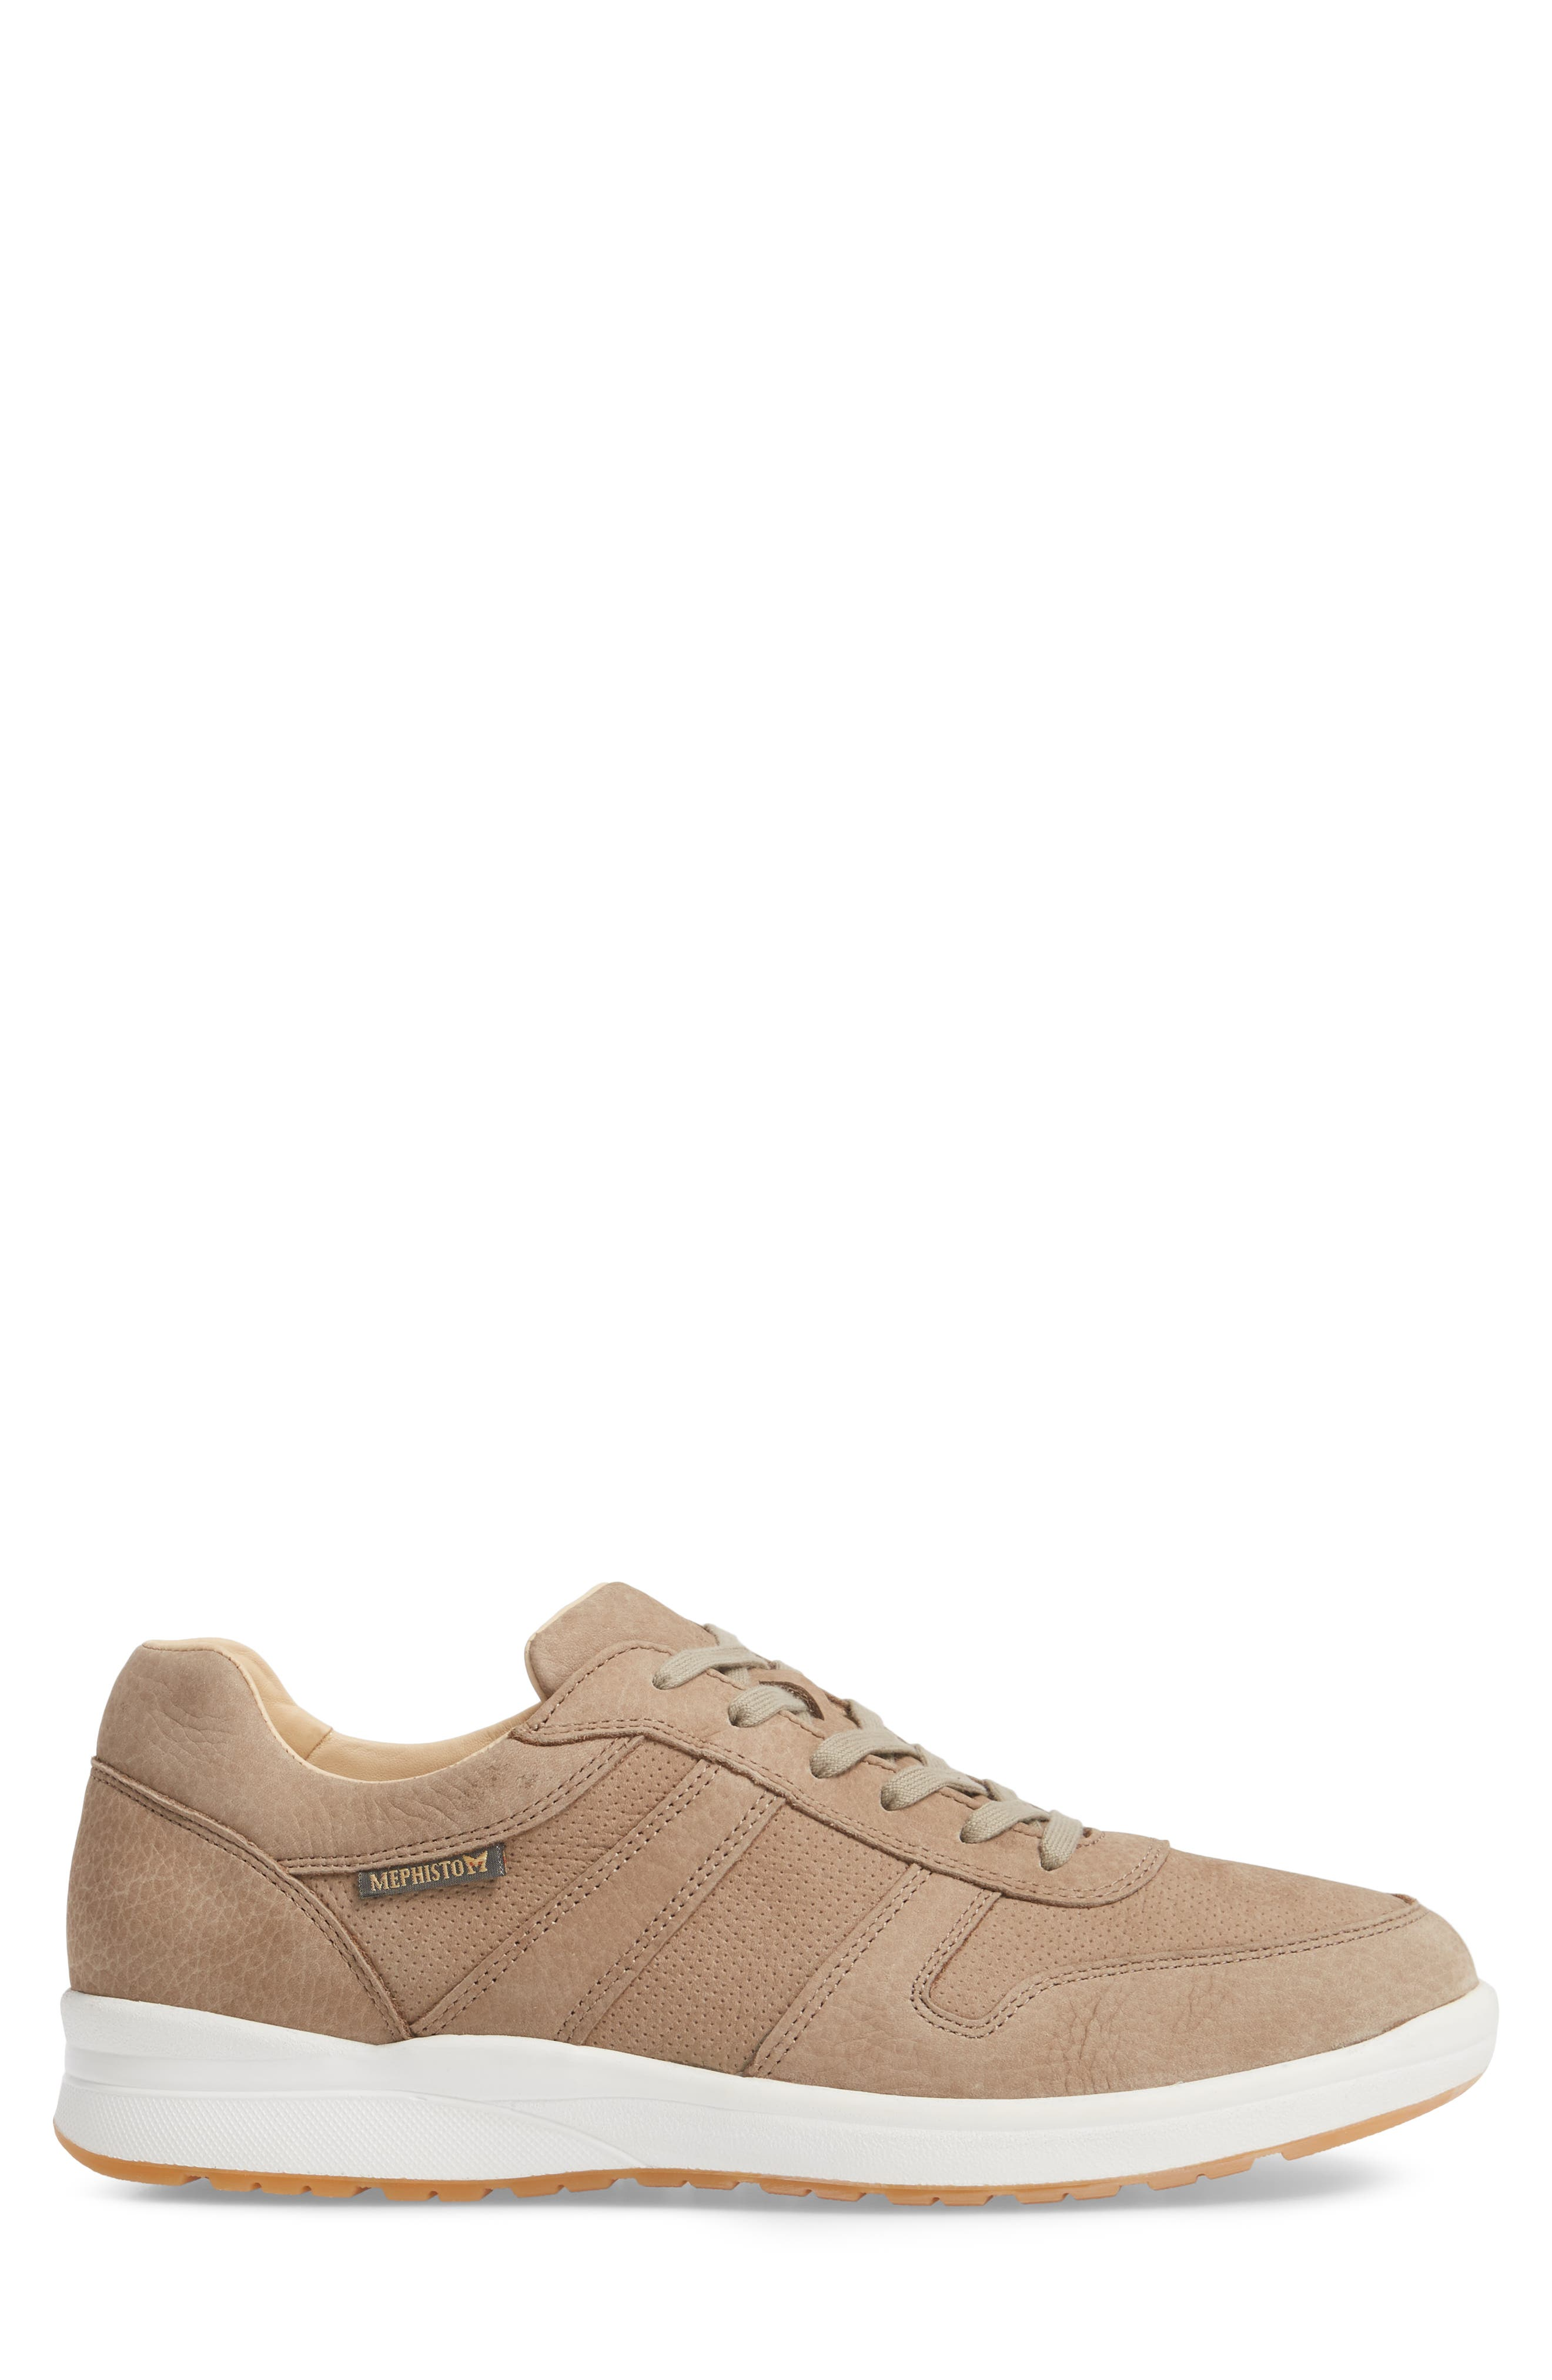 MEPHISTO, Vito Perforated Sneaker, Alternate thumbnail 3, color, SAND